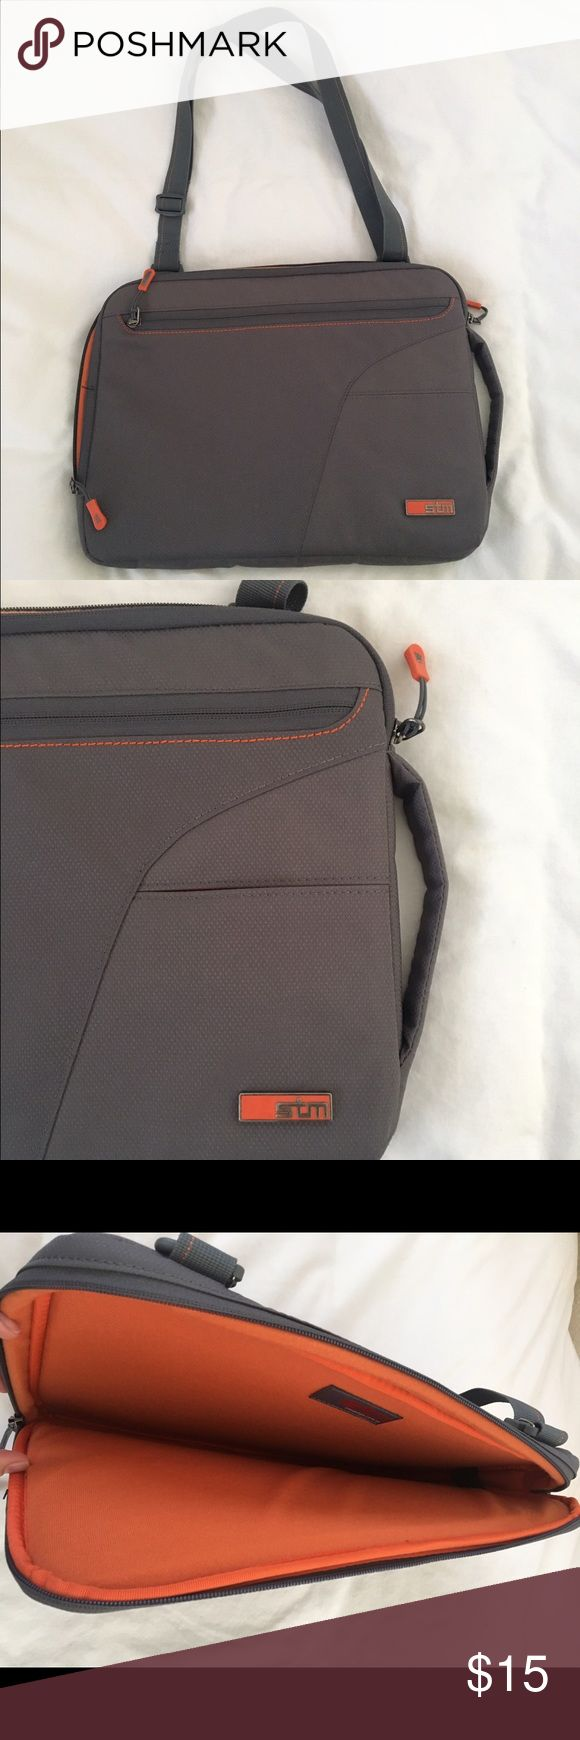 STM laptop bag STM Laptop Bag/Case. Has shoulder strap and carrying handle. Sides of Bag are VERY padded. Orange felt inside and gray on outside. Has one zipper pocket on outside and two other pockets. GREAT condition! Bags Laptop Bags